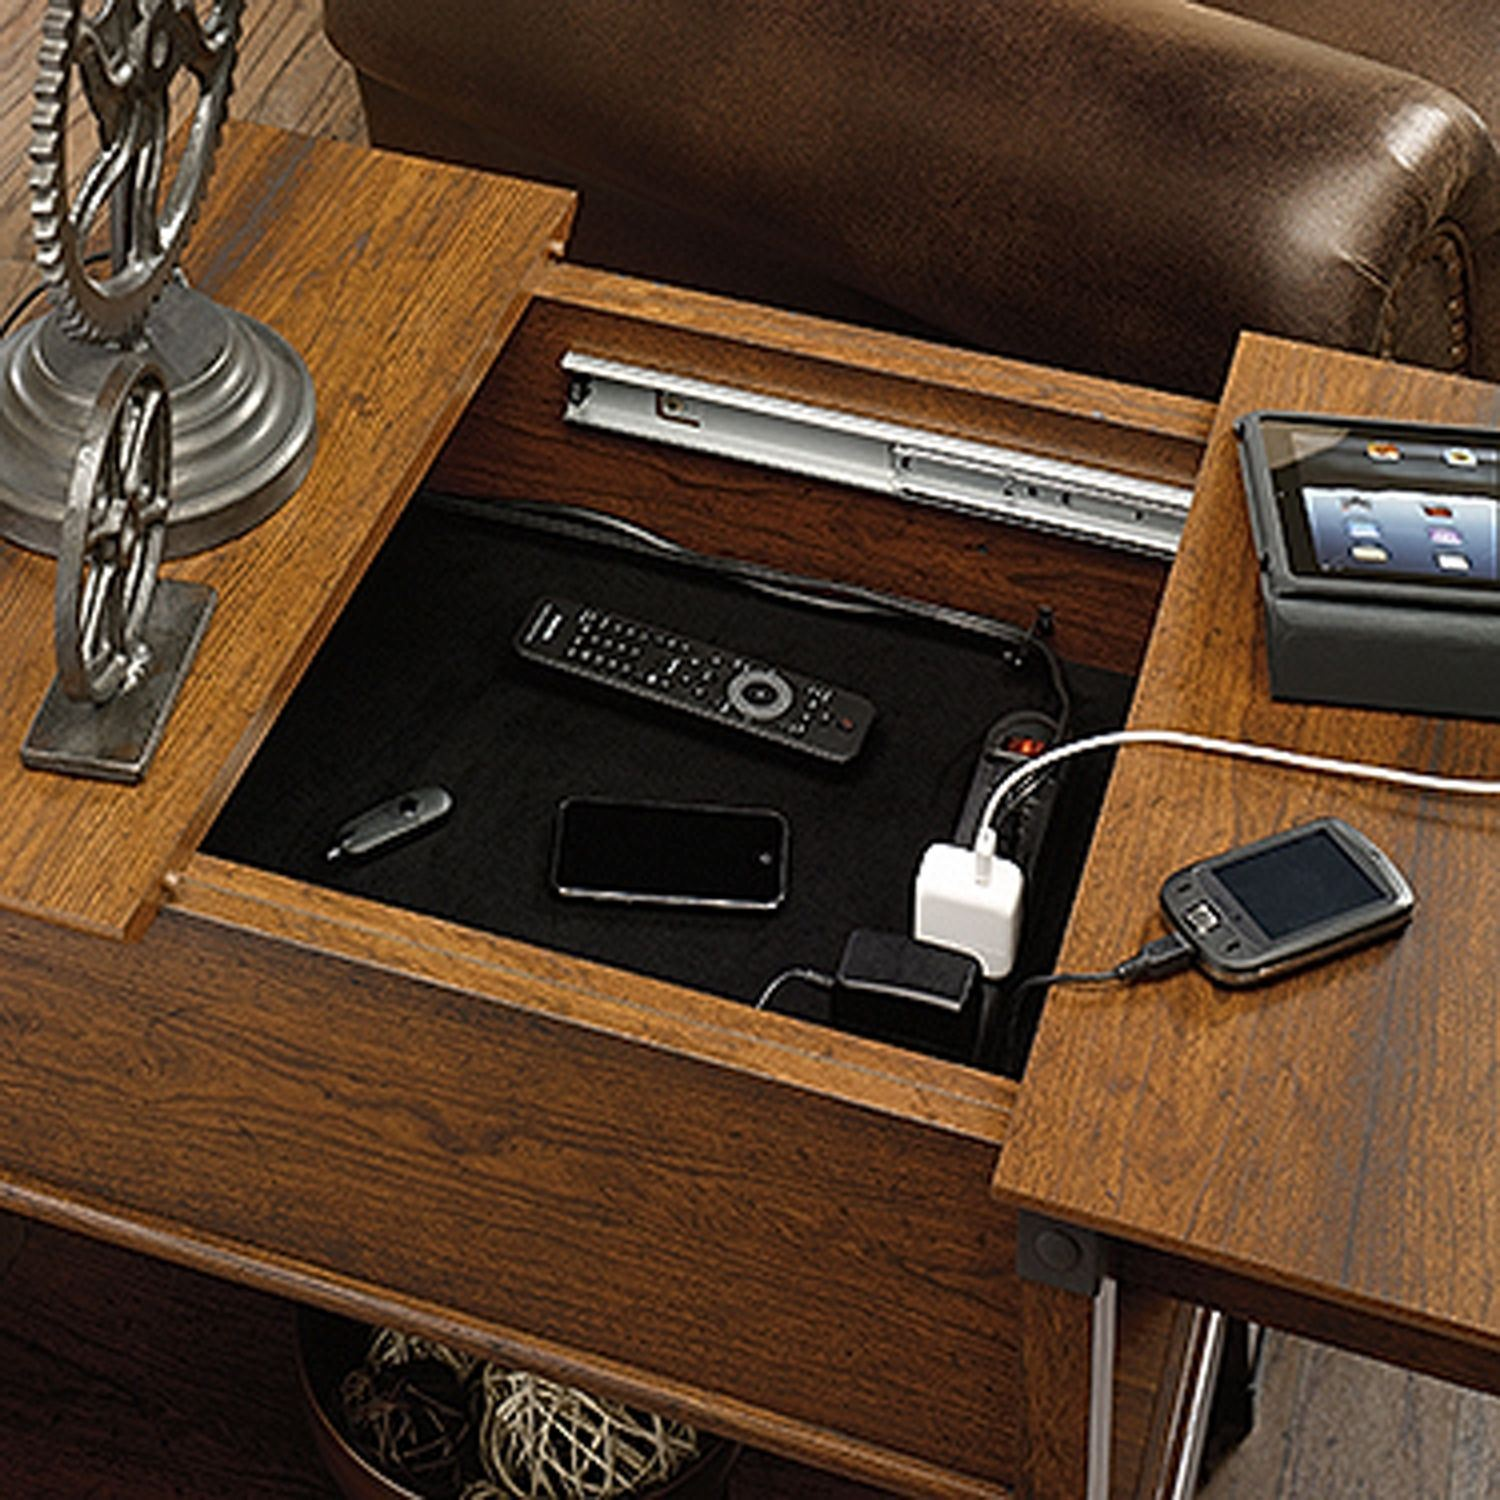 Picture of Carson Forge Smartcenter Side Table Washington Che